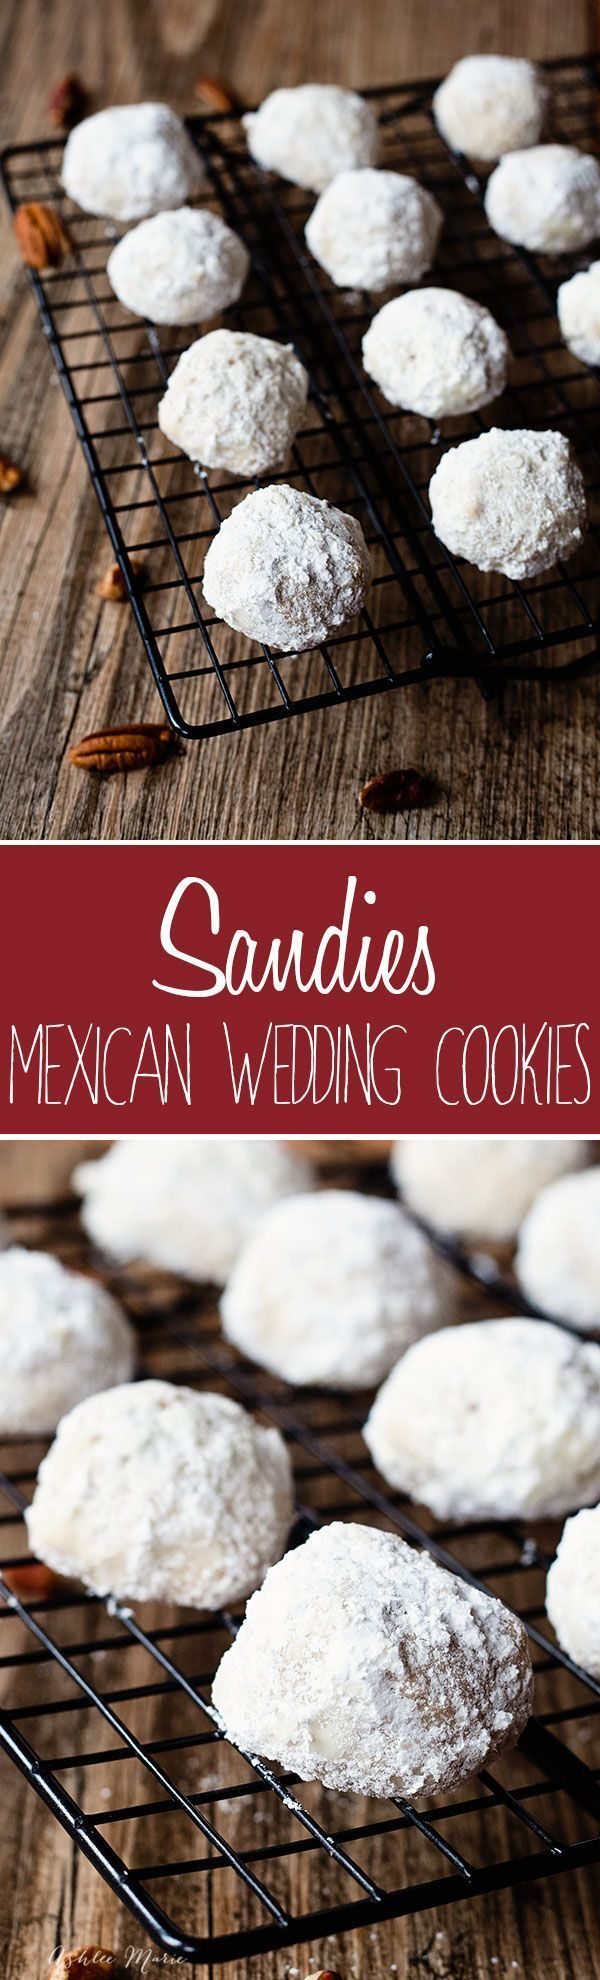 these pecan cookies are known by many names, sandies, mexican wedding cookies or snowballs.  The point is they are delicious and everyone loves them